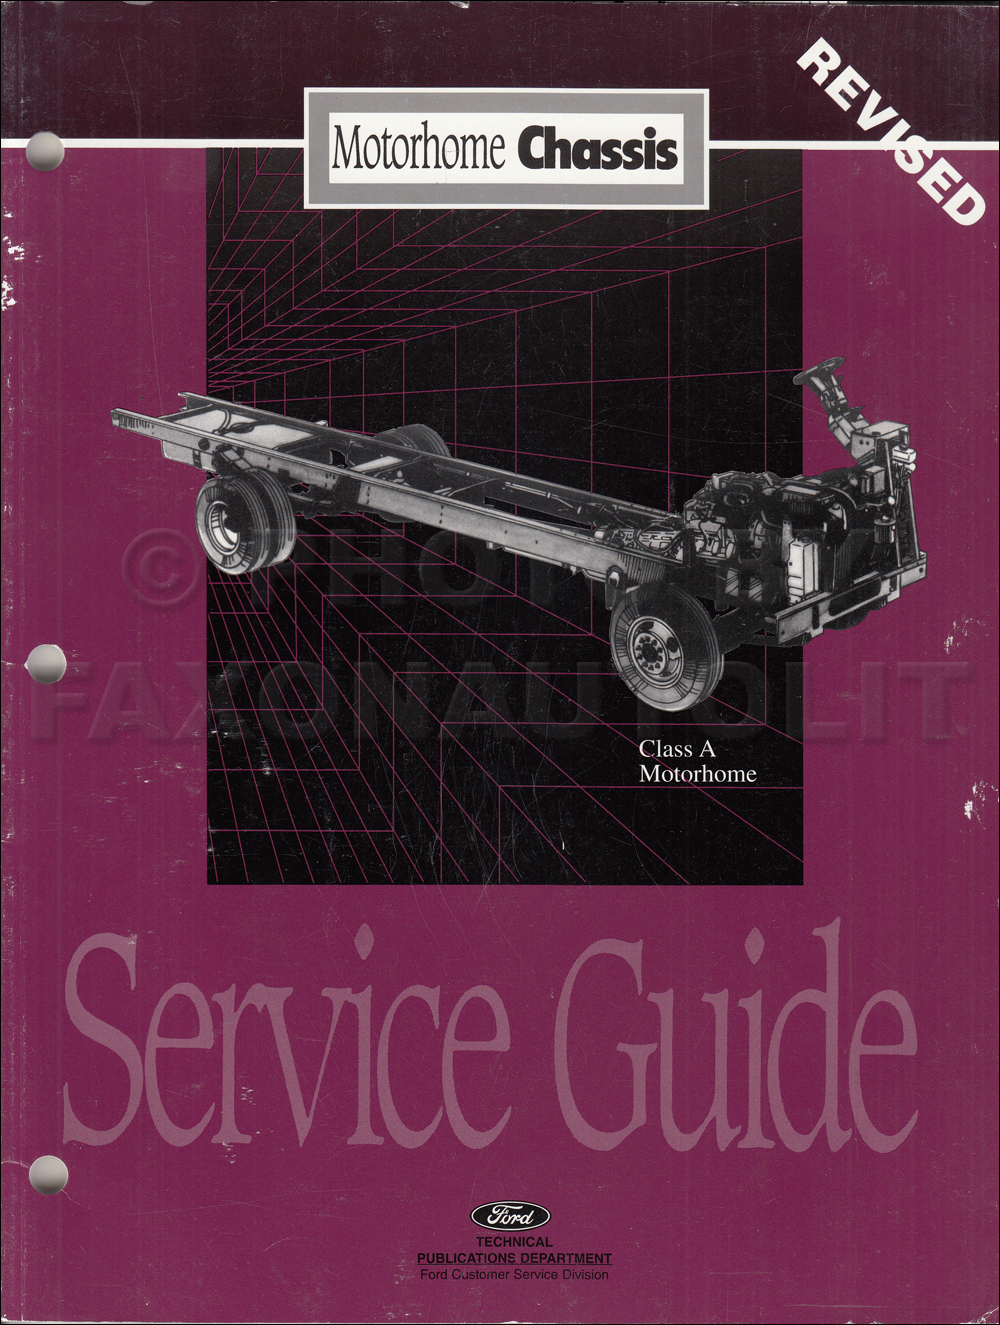 ford f53 service manuals shop owner maintenance and repair faxon 1996 1997 ford motorhome chassis service guide original revised